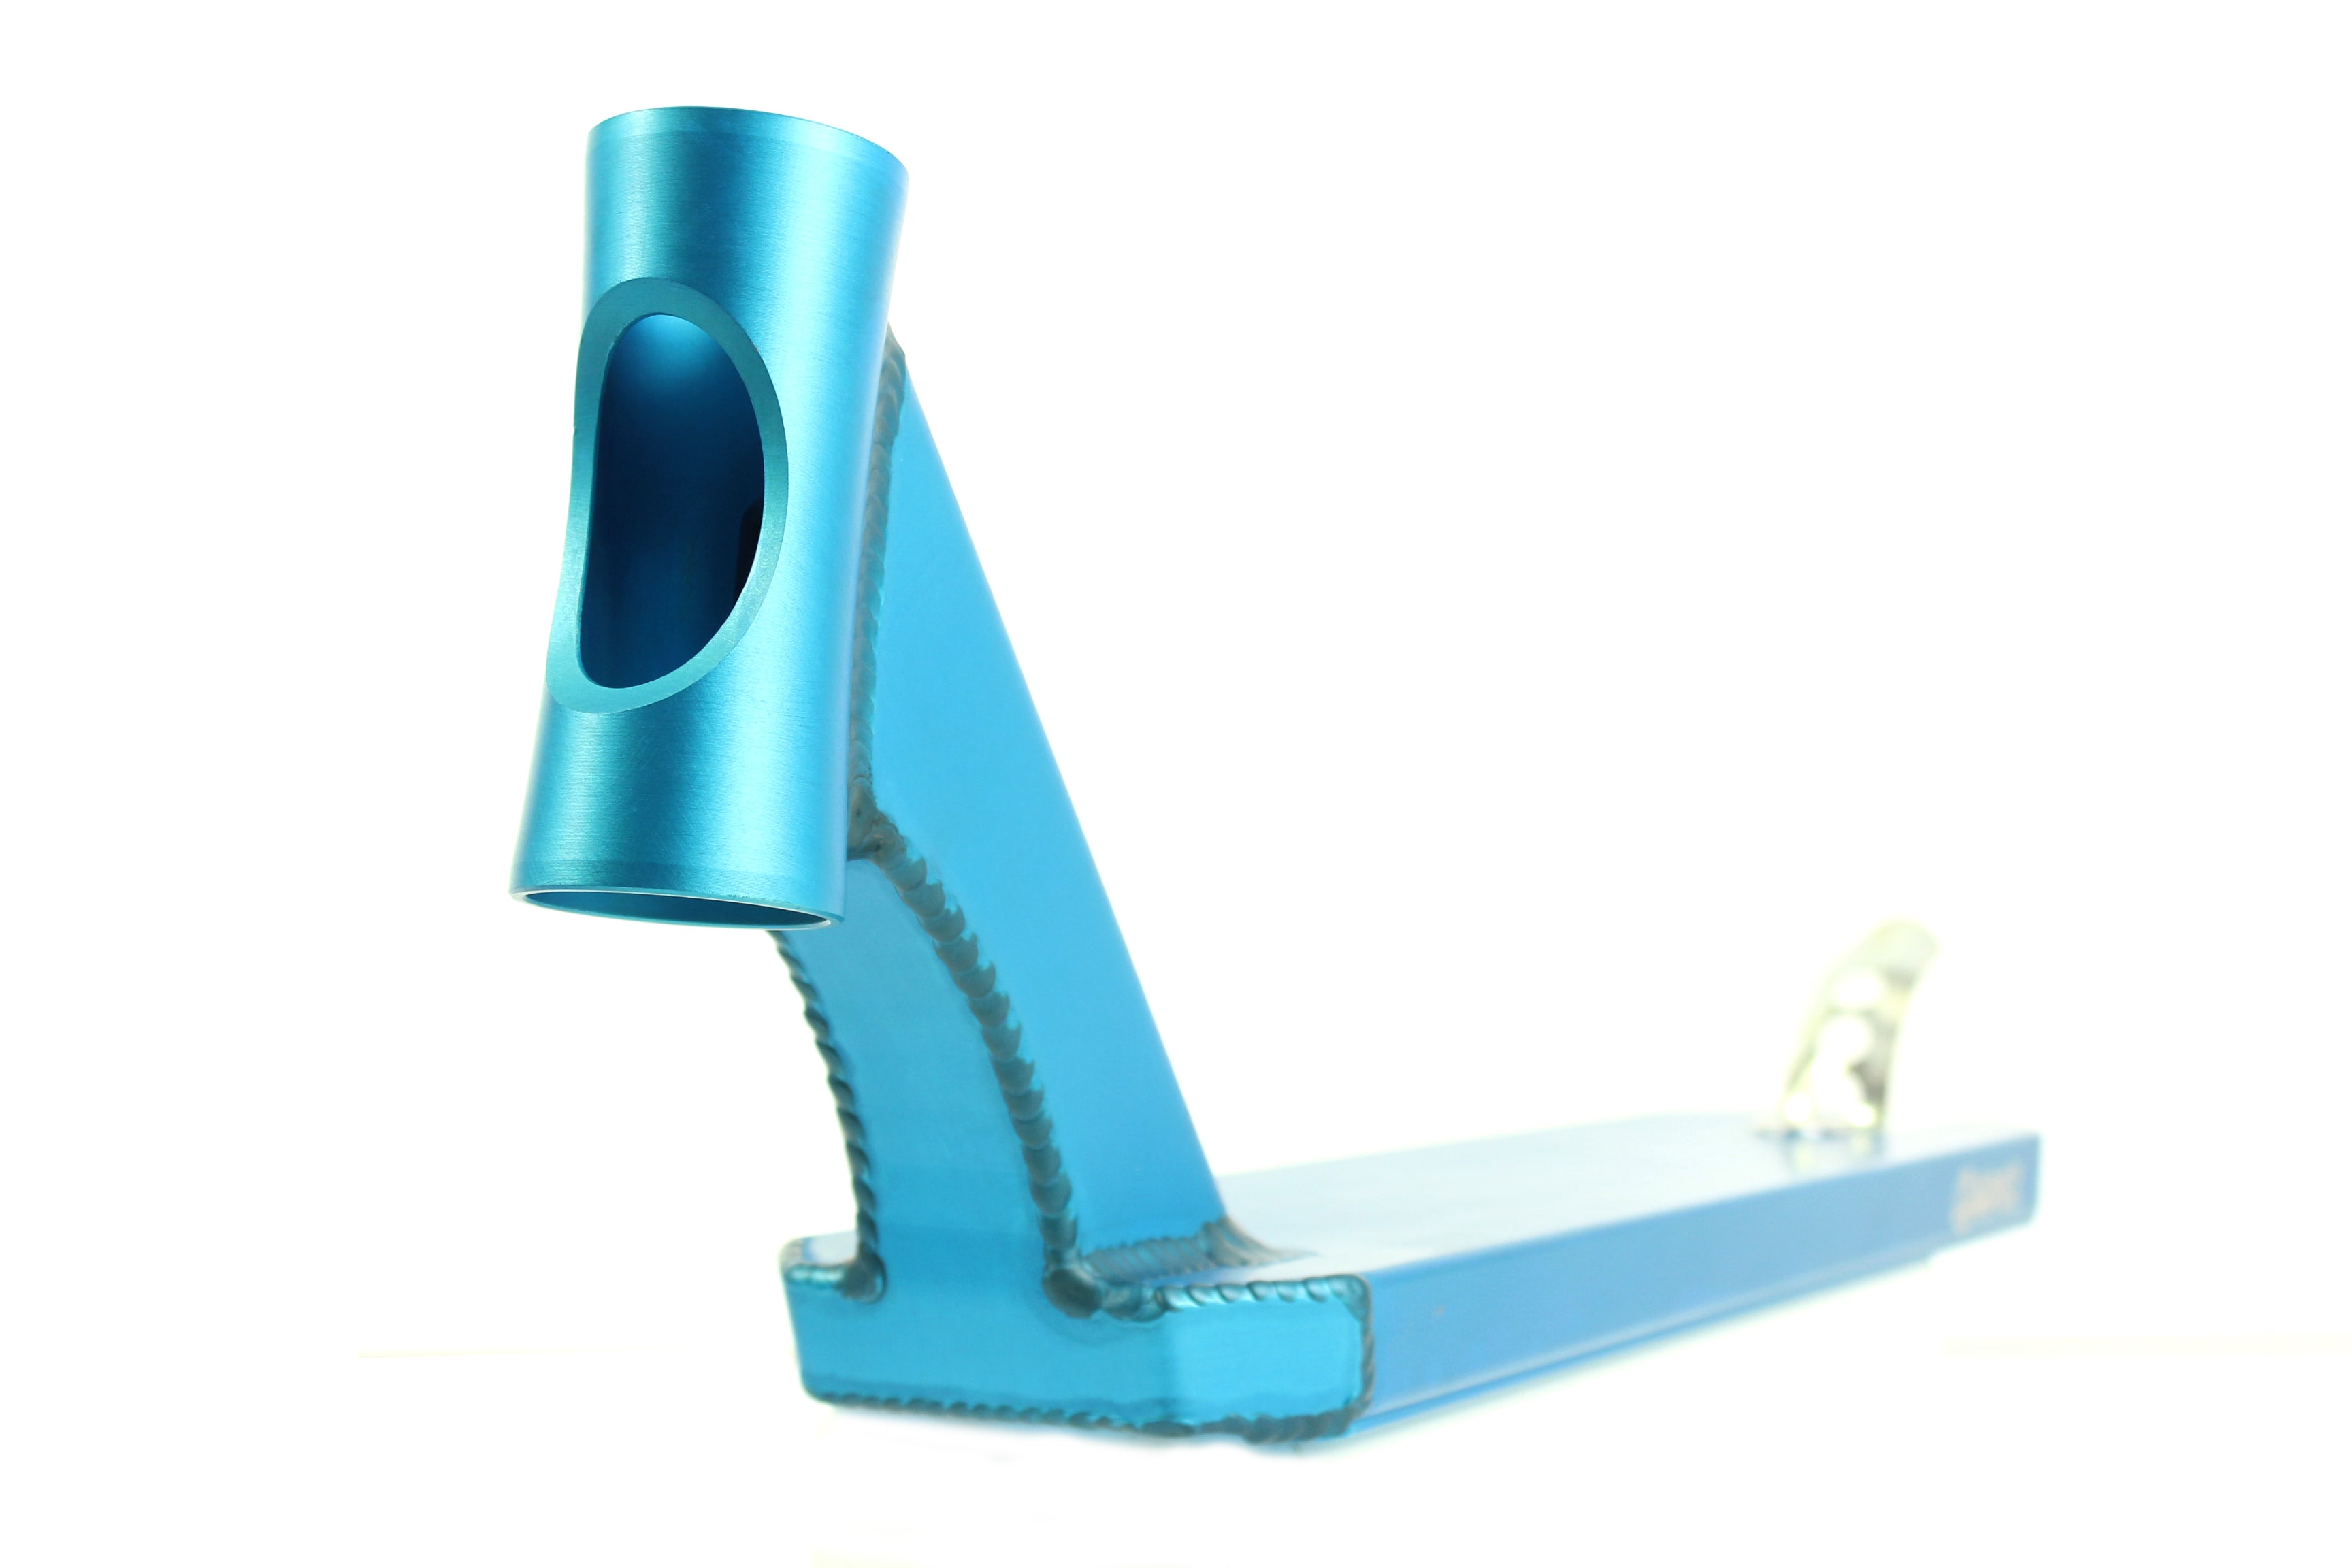 Image of Apex Pro Turquoise Deck - 580mm